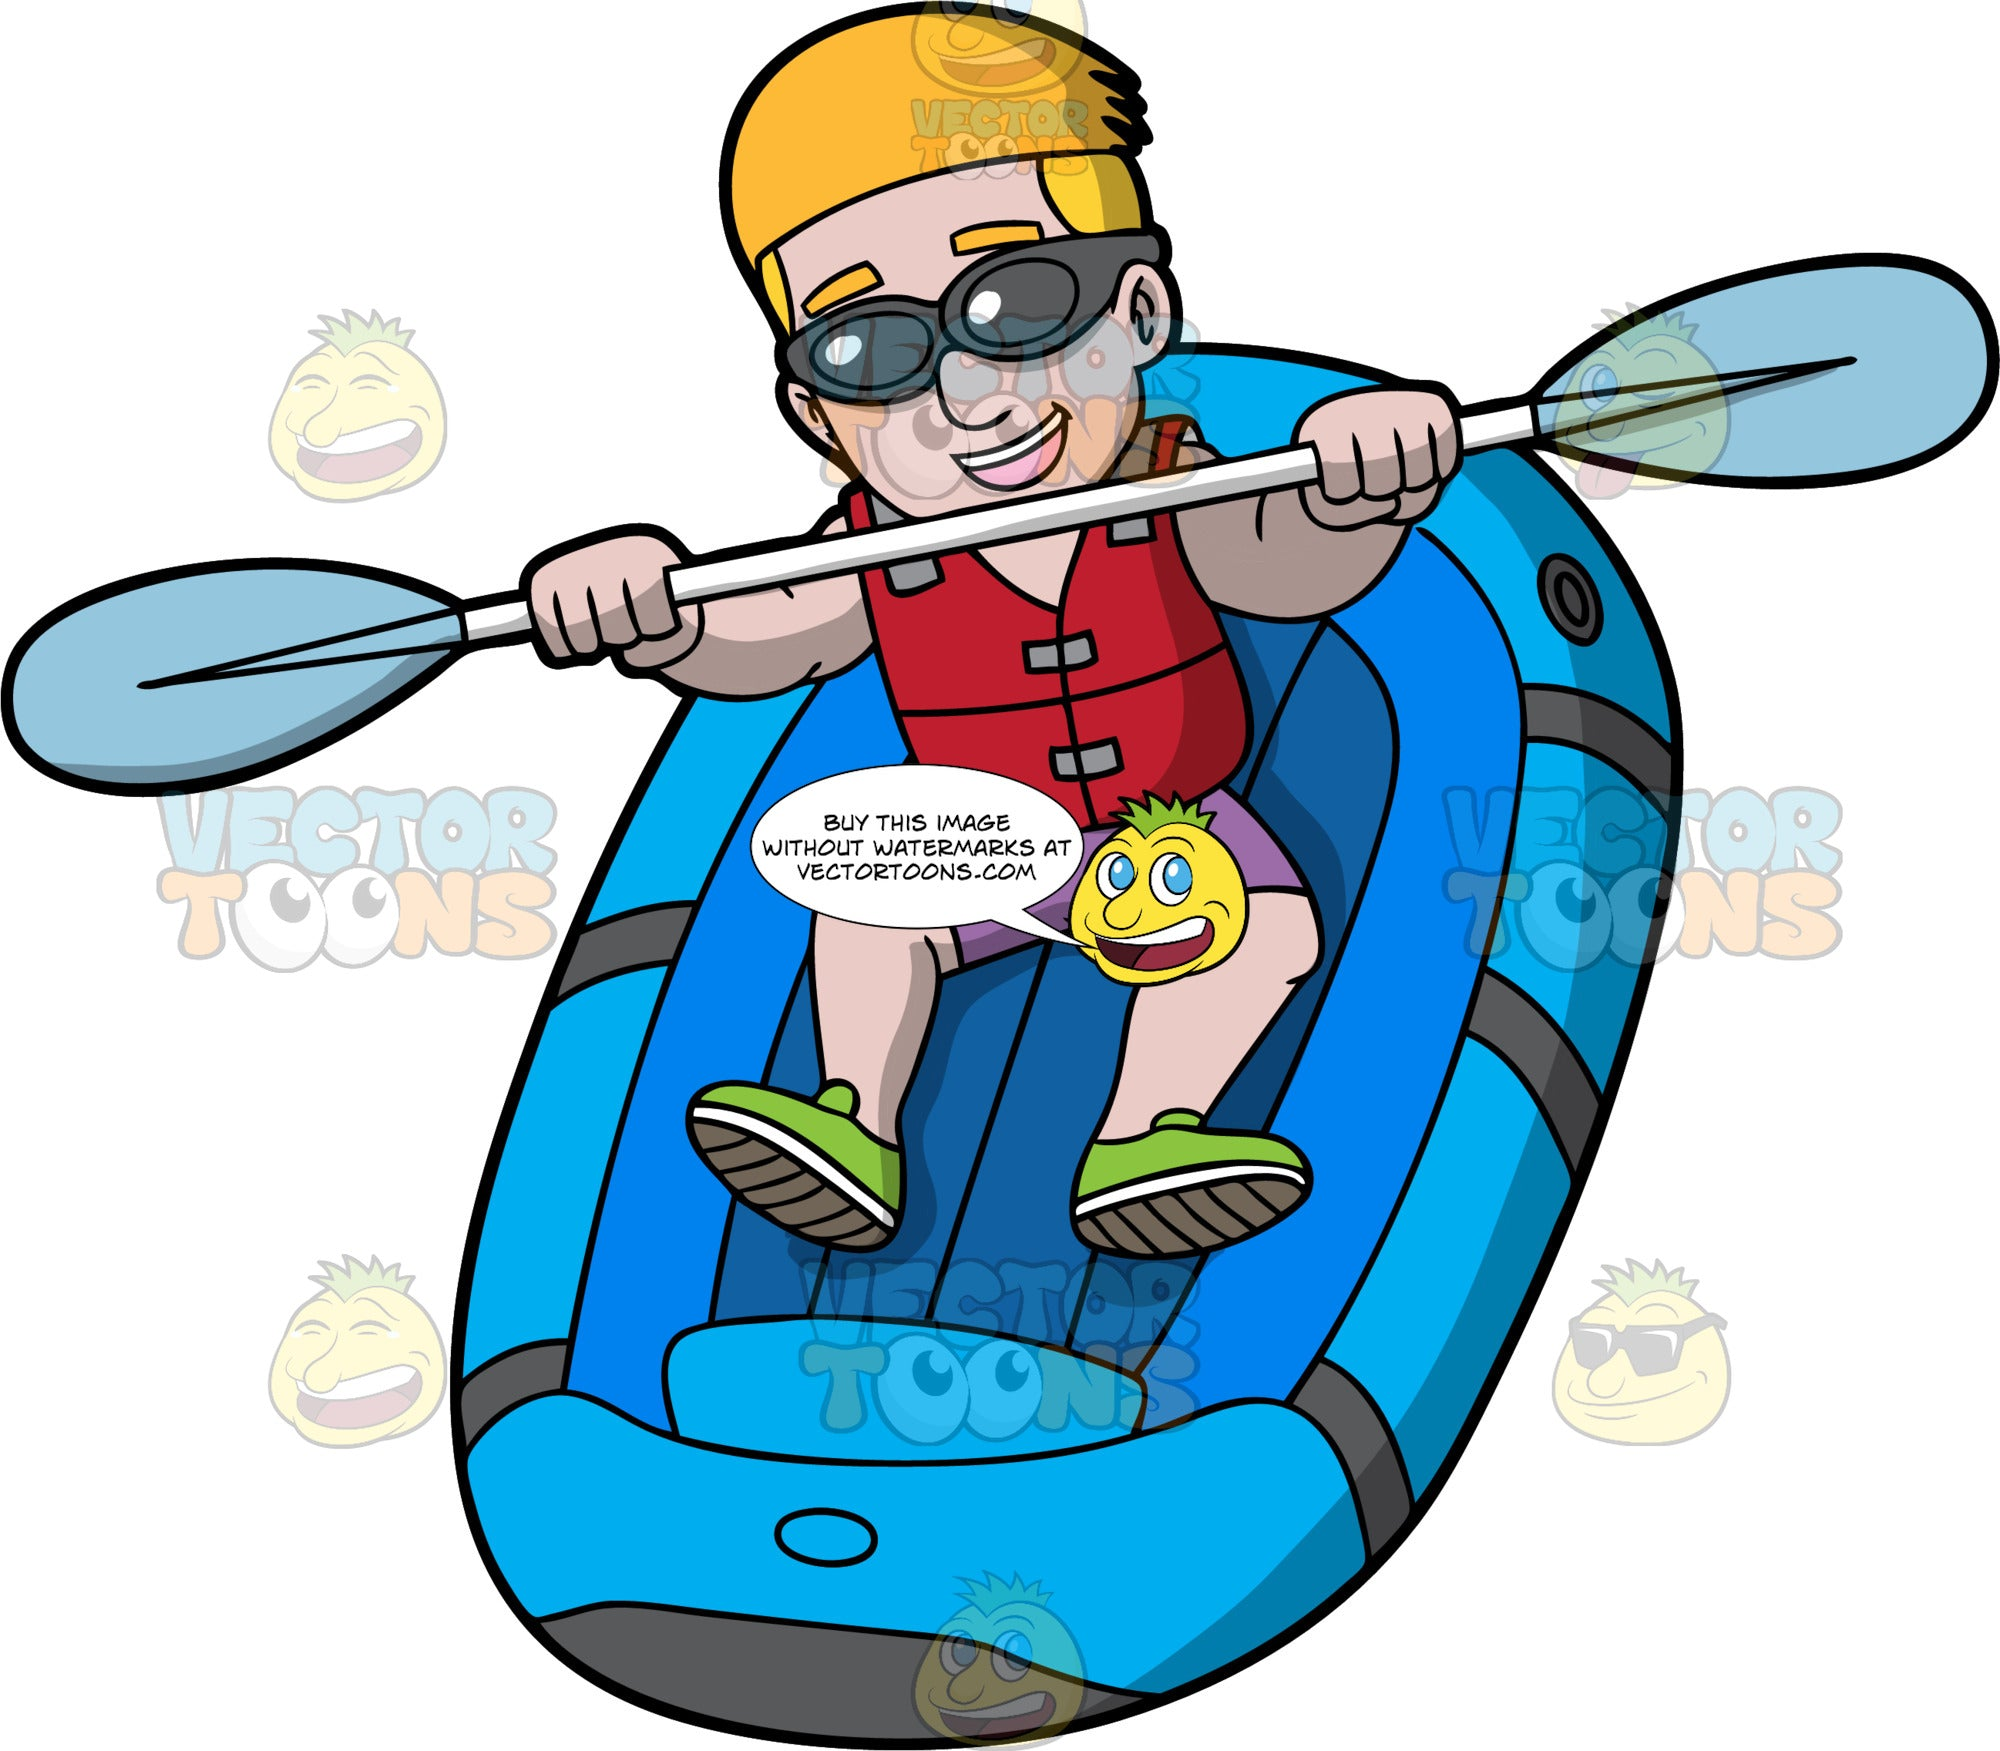 A Man Rafting Down Some River Rapids. A man with blonde hair, wearing purple shorts, a red life jacket, green water shoes and sunglasses, holds onto a double sided paddle as his blue raft drops down some rapids